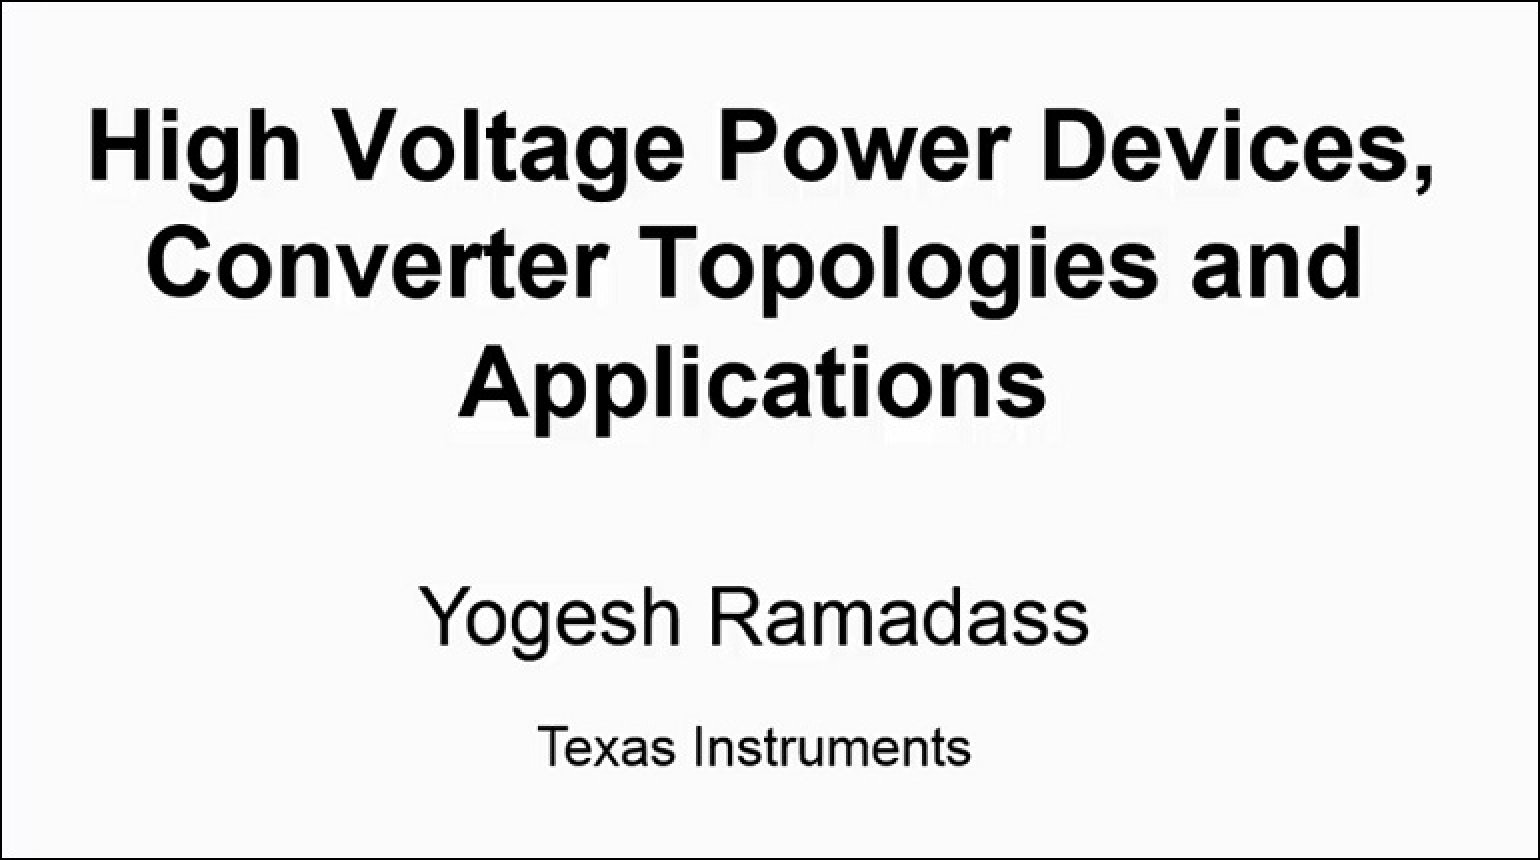 High Voltage Power Devices, Converter Topologies and Applications Video